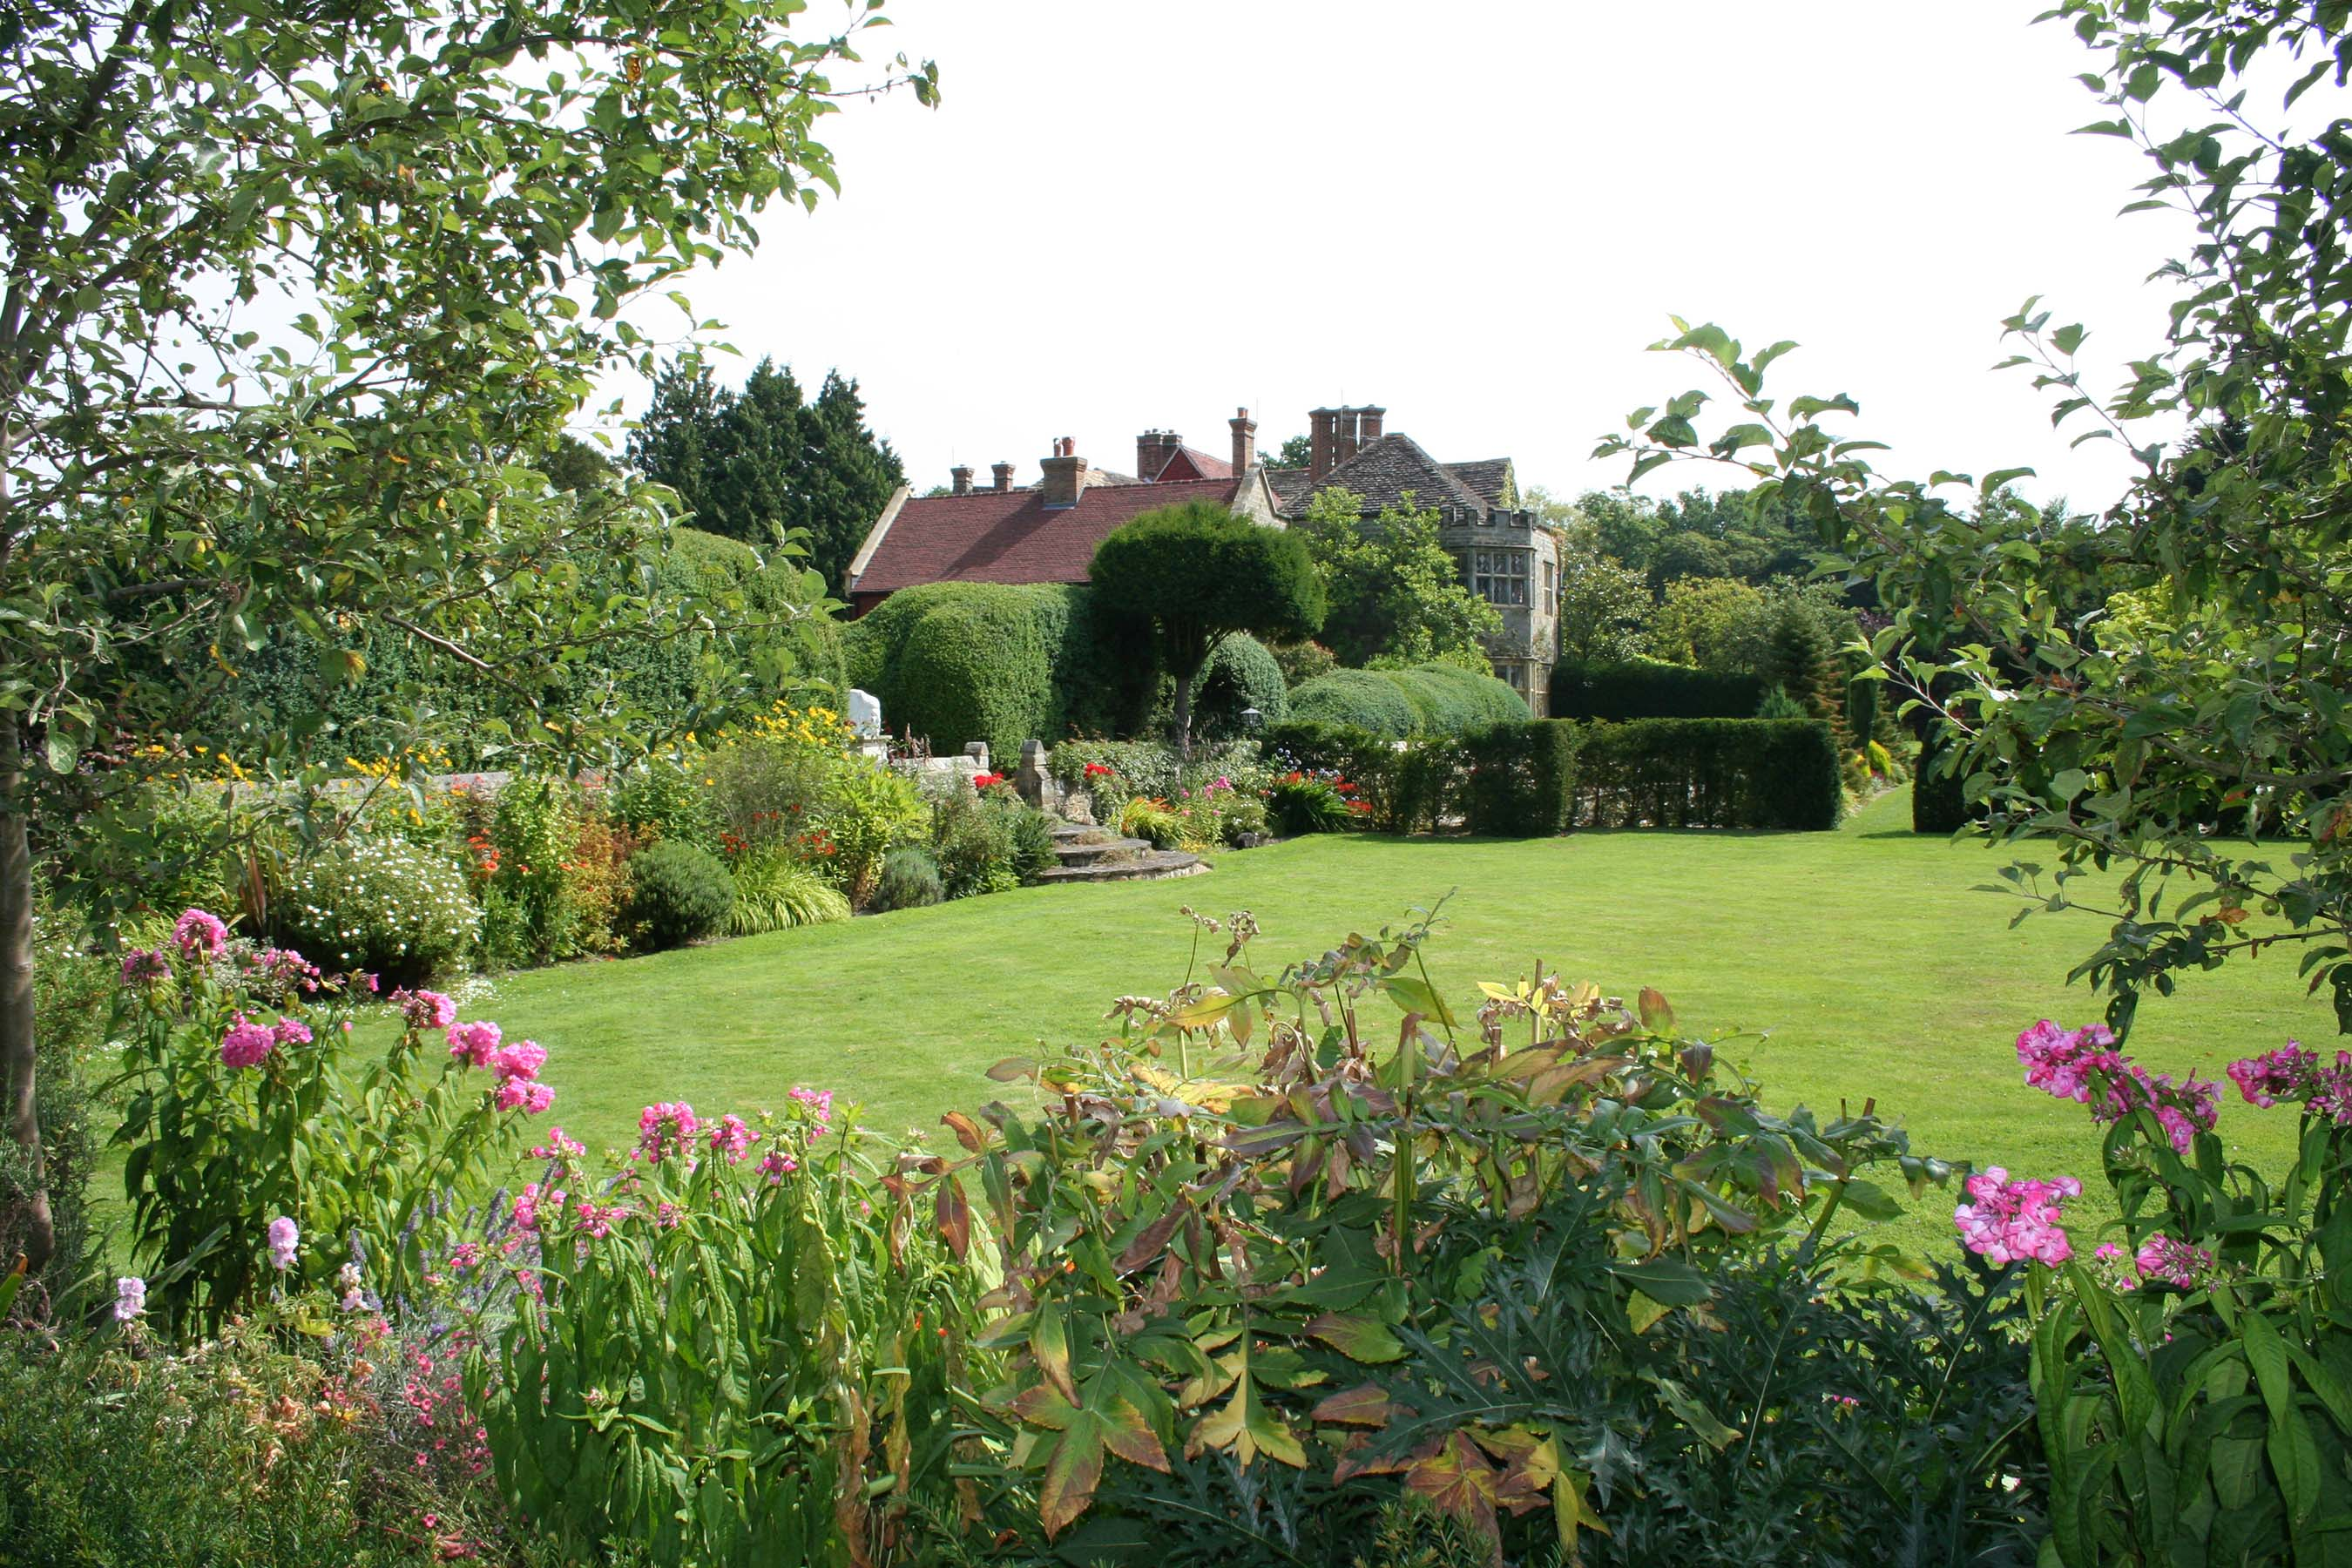 Planning a second wedding? Smallfield Place could be the perfect venue for you.